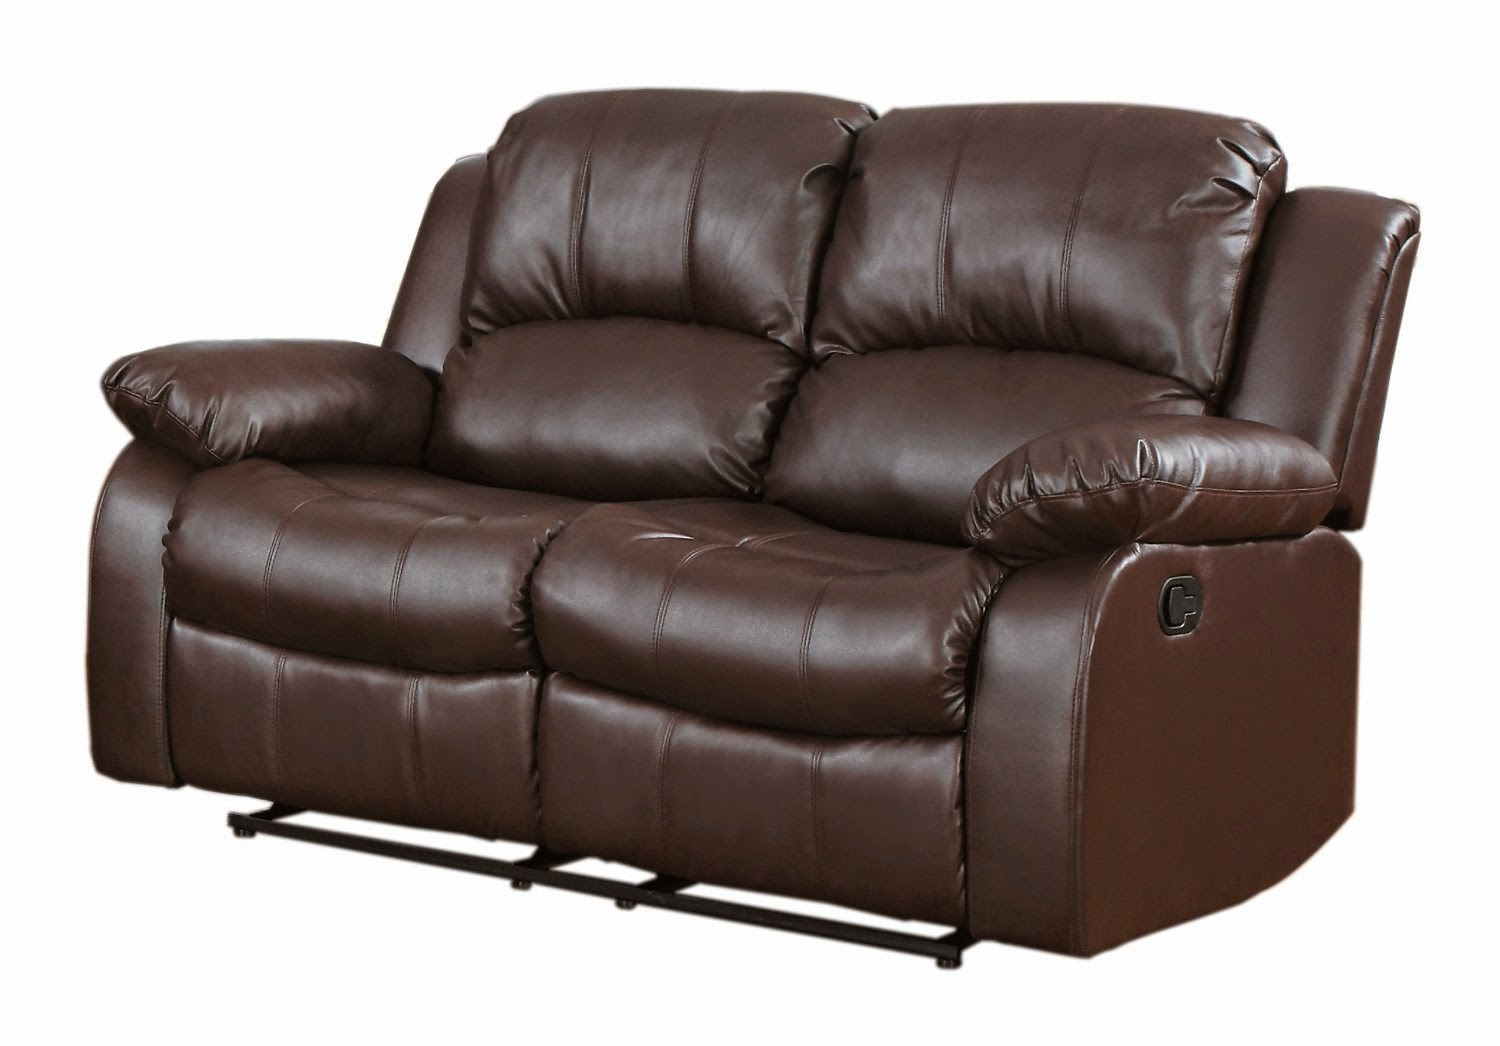 Brown Leather Sofa Recliner Stores Glasgow Couch And Loveseat